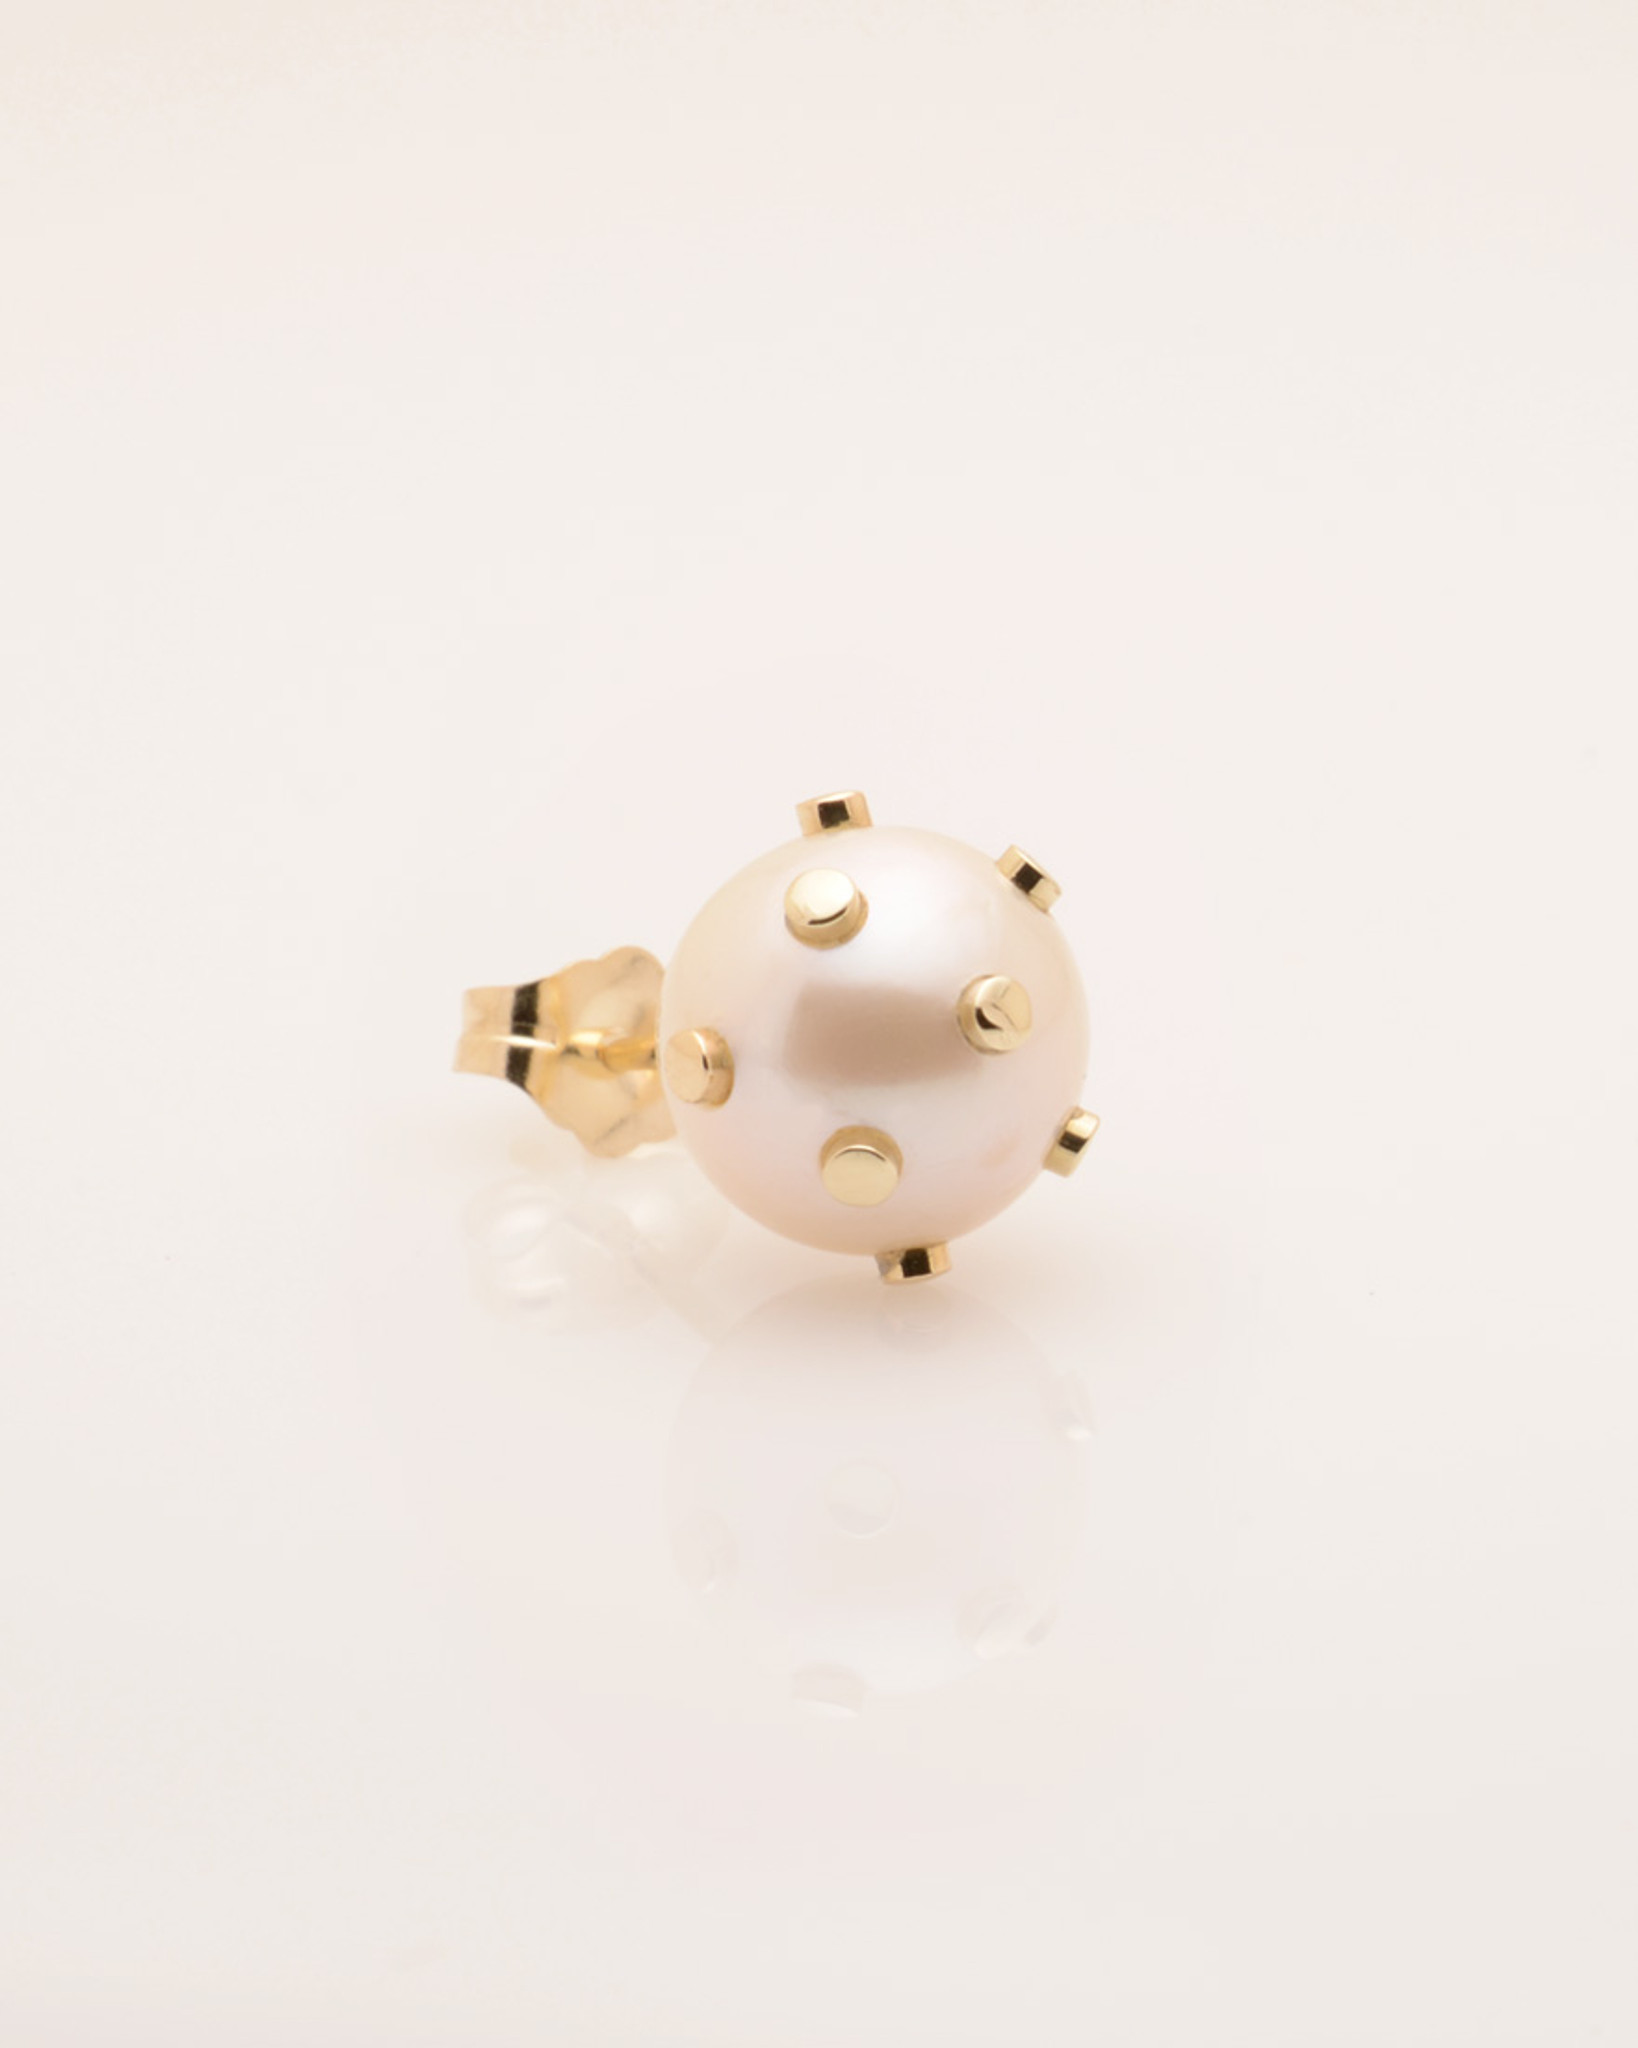 Side View of Single Cultured Freshwater Pearl Earring with 14k Gold Dots & Post by Jewelry Designer Nektar De Stagni (8-9mm)